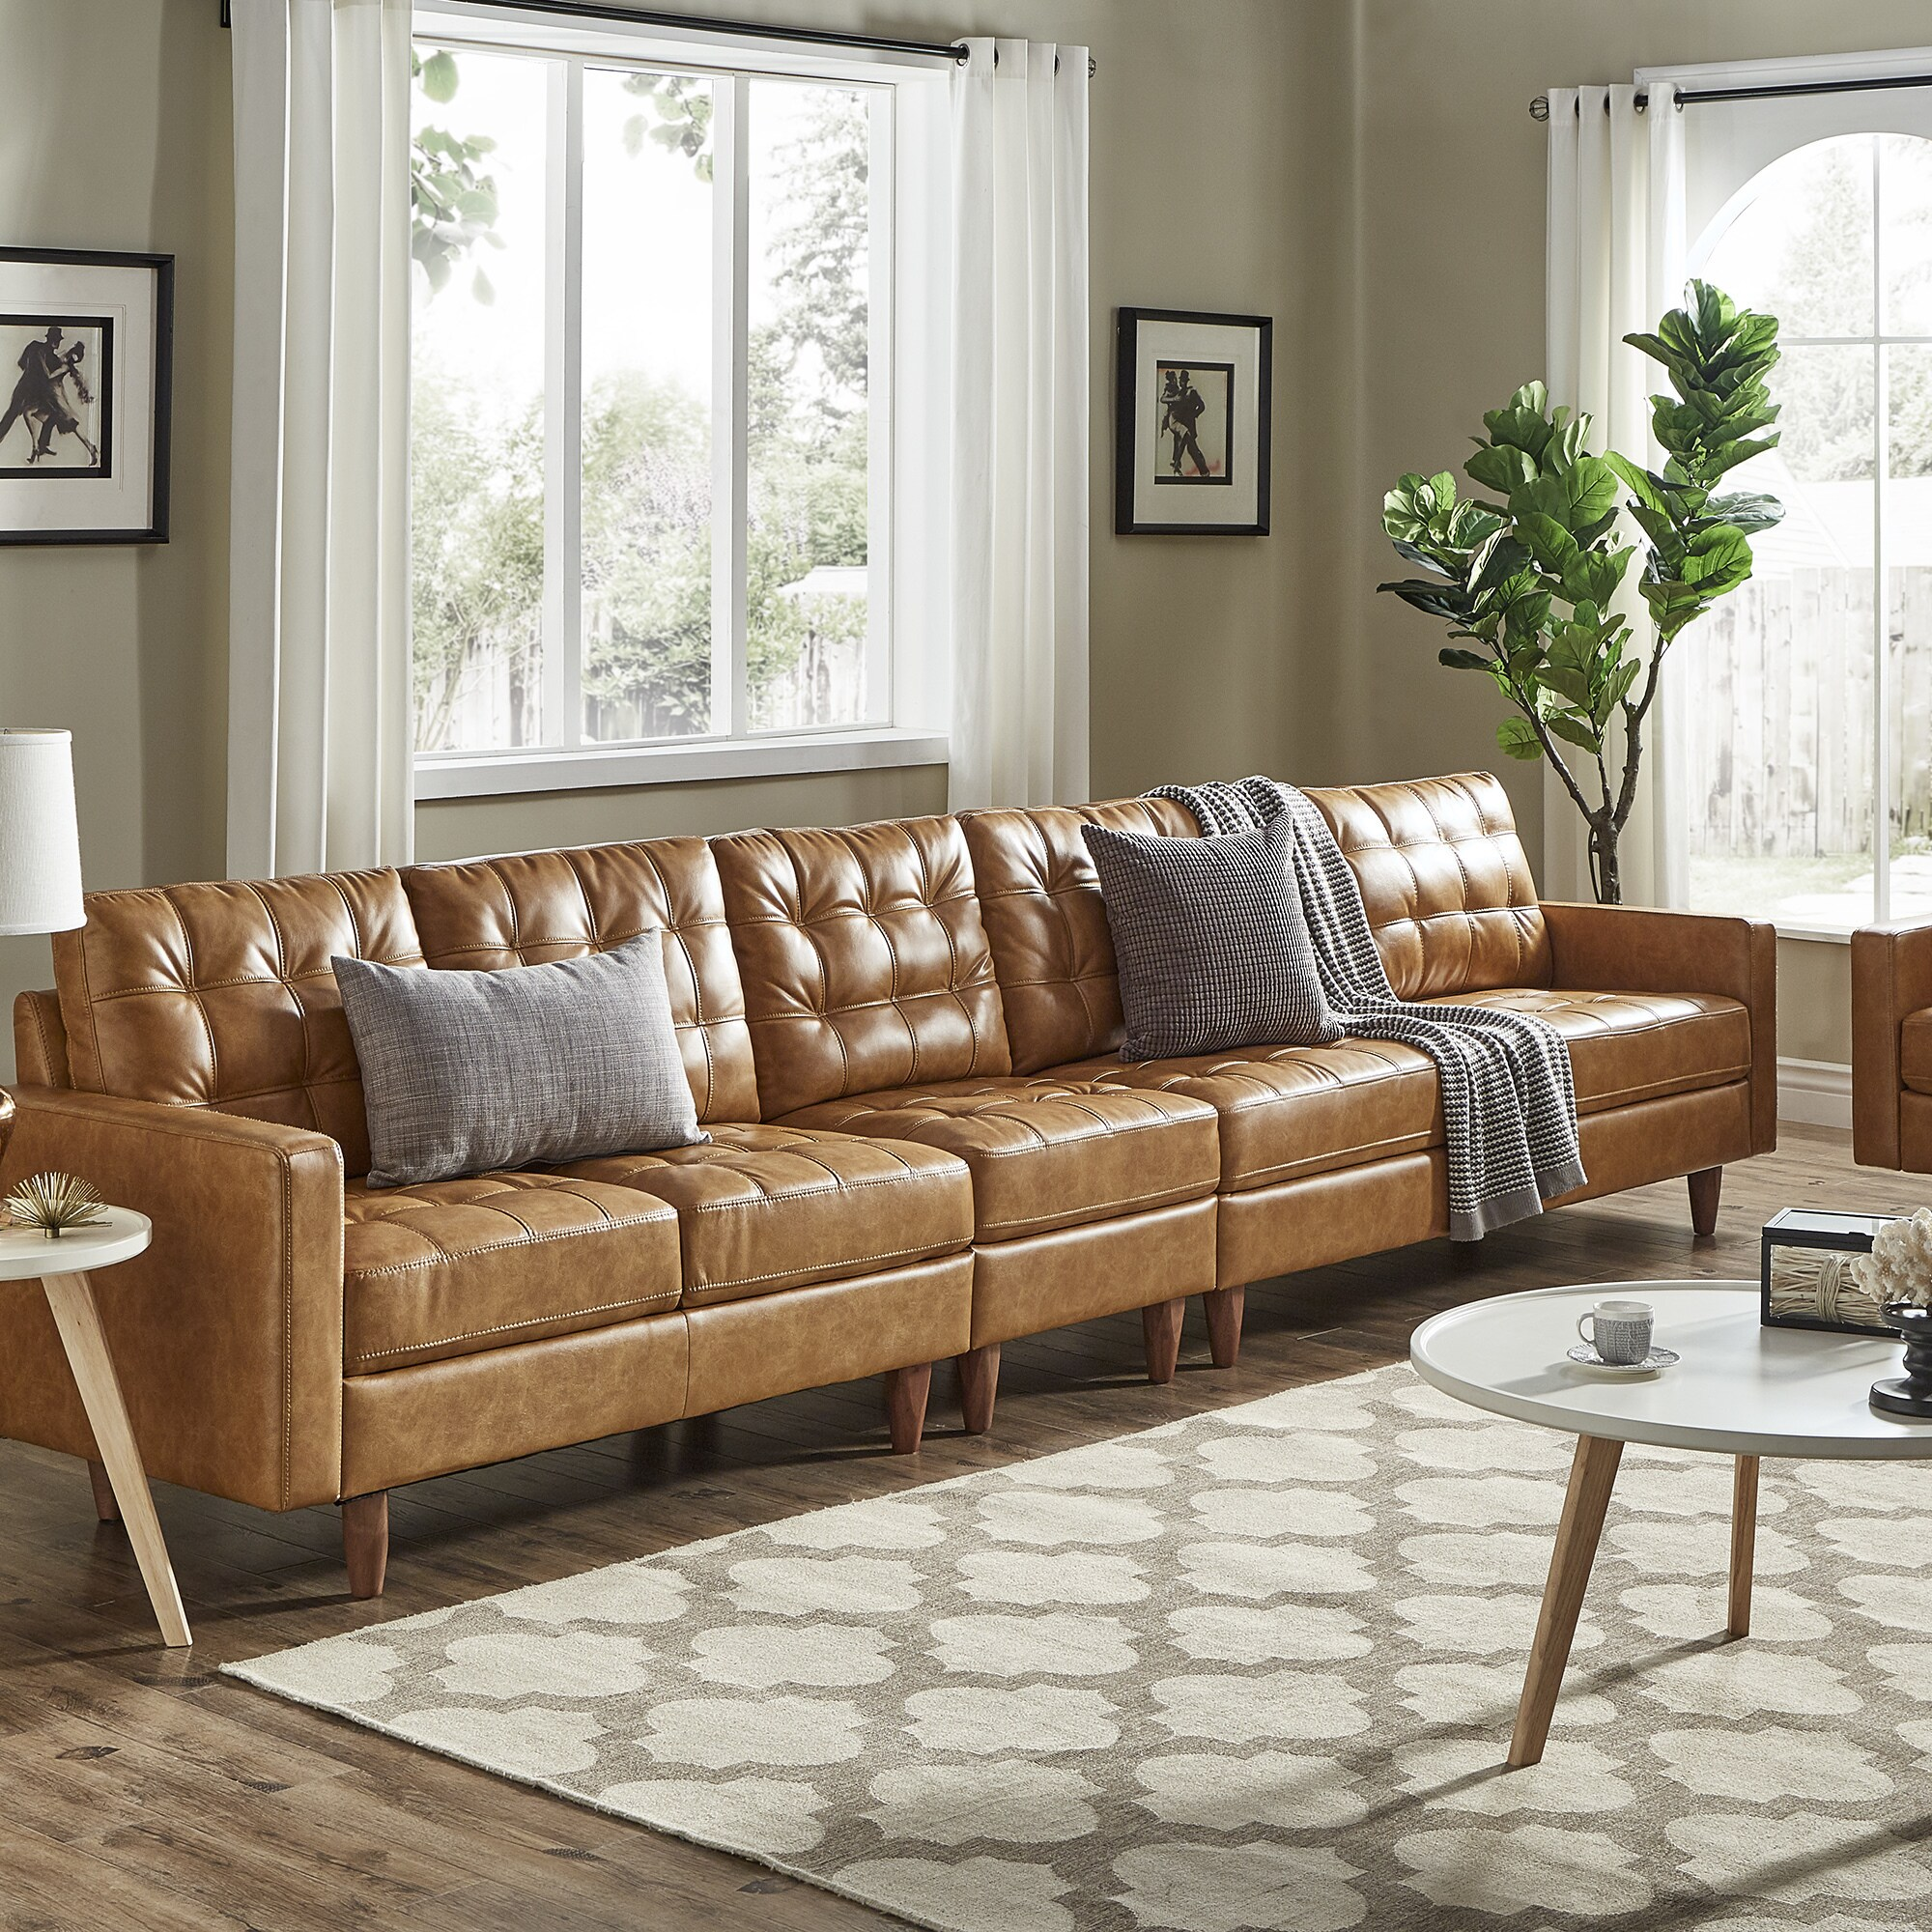 odin caramel leather gel extra long sofas by inspire q modern